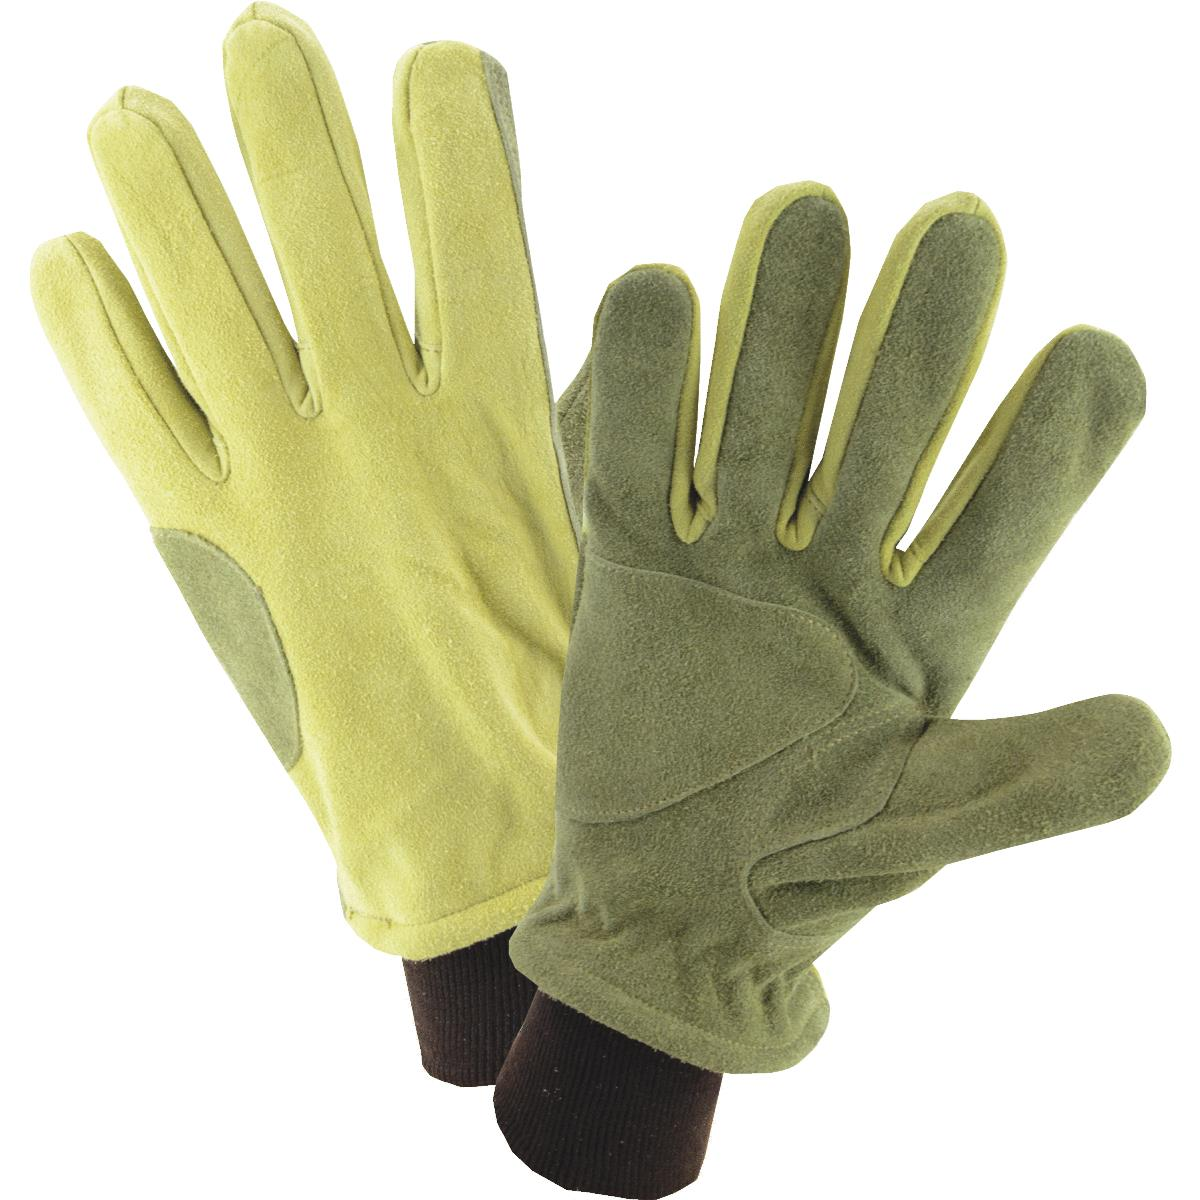 Wells Lamont 1195Xl Leather Winter Work Glove